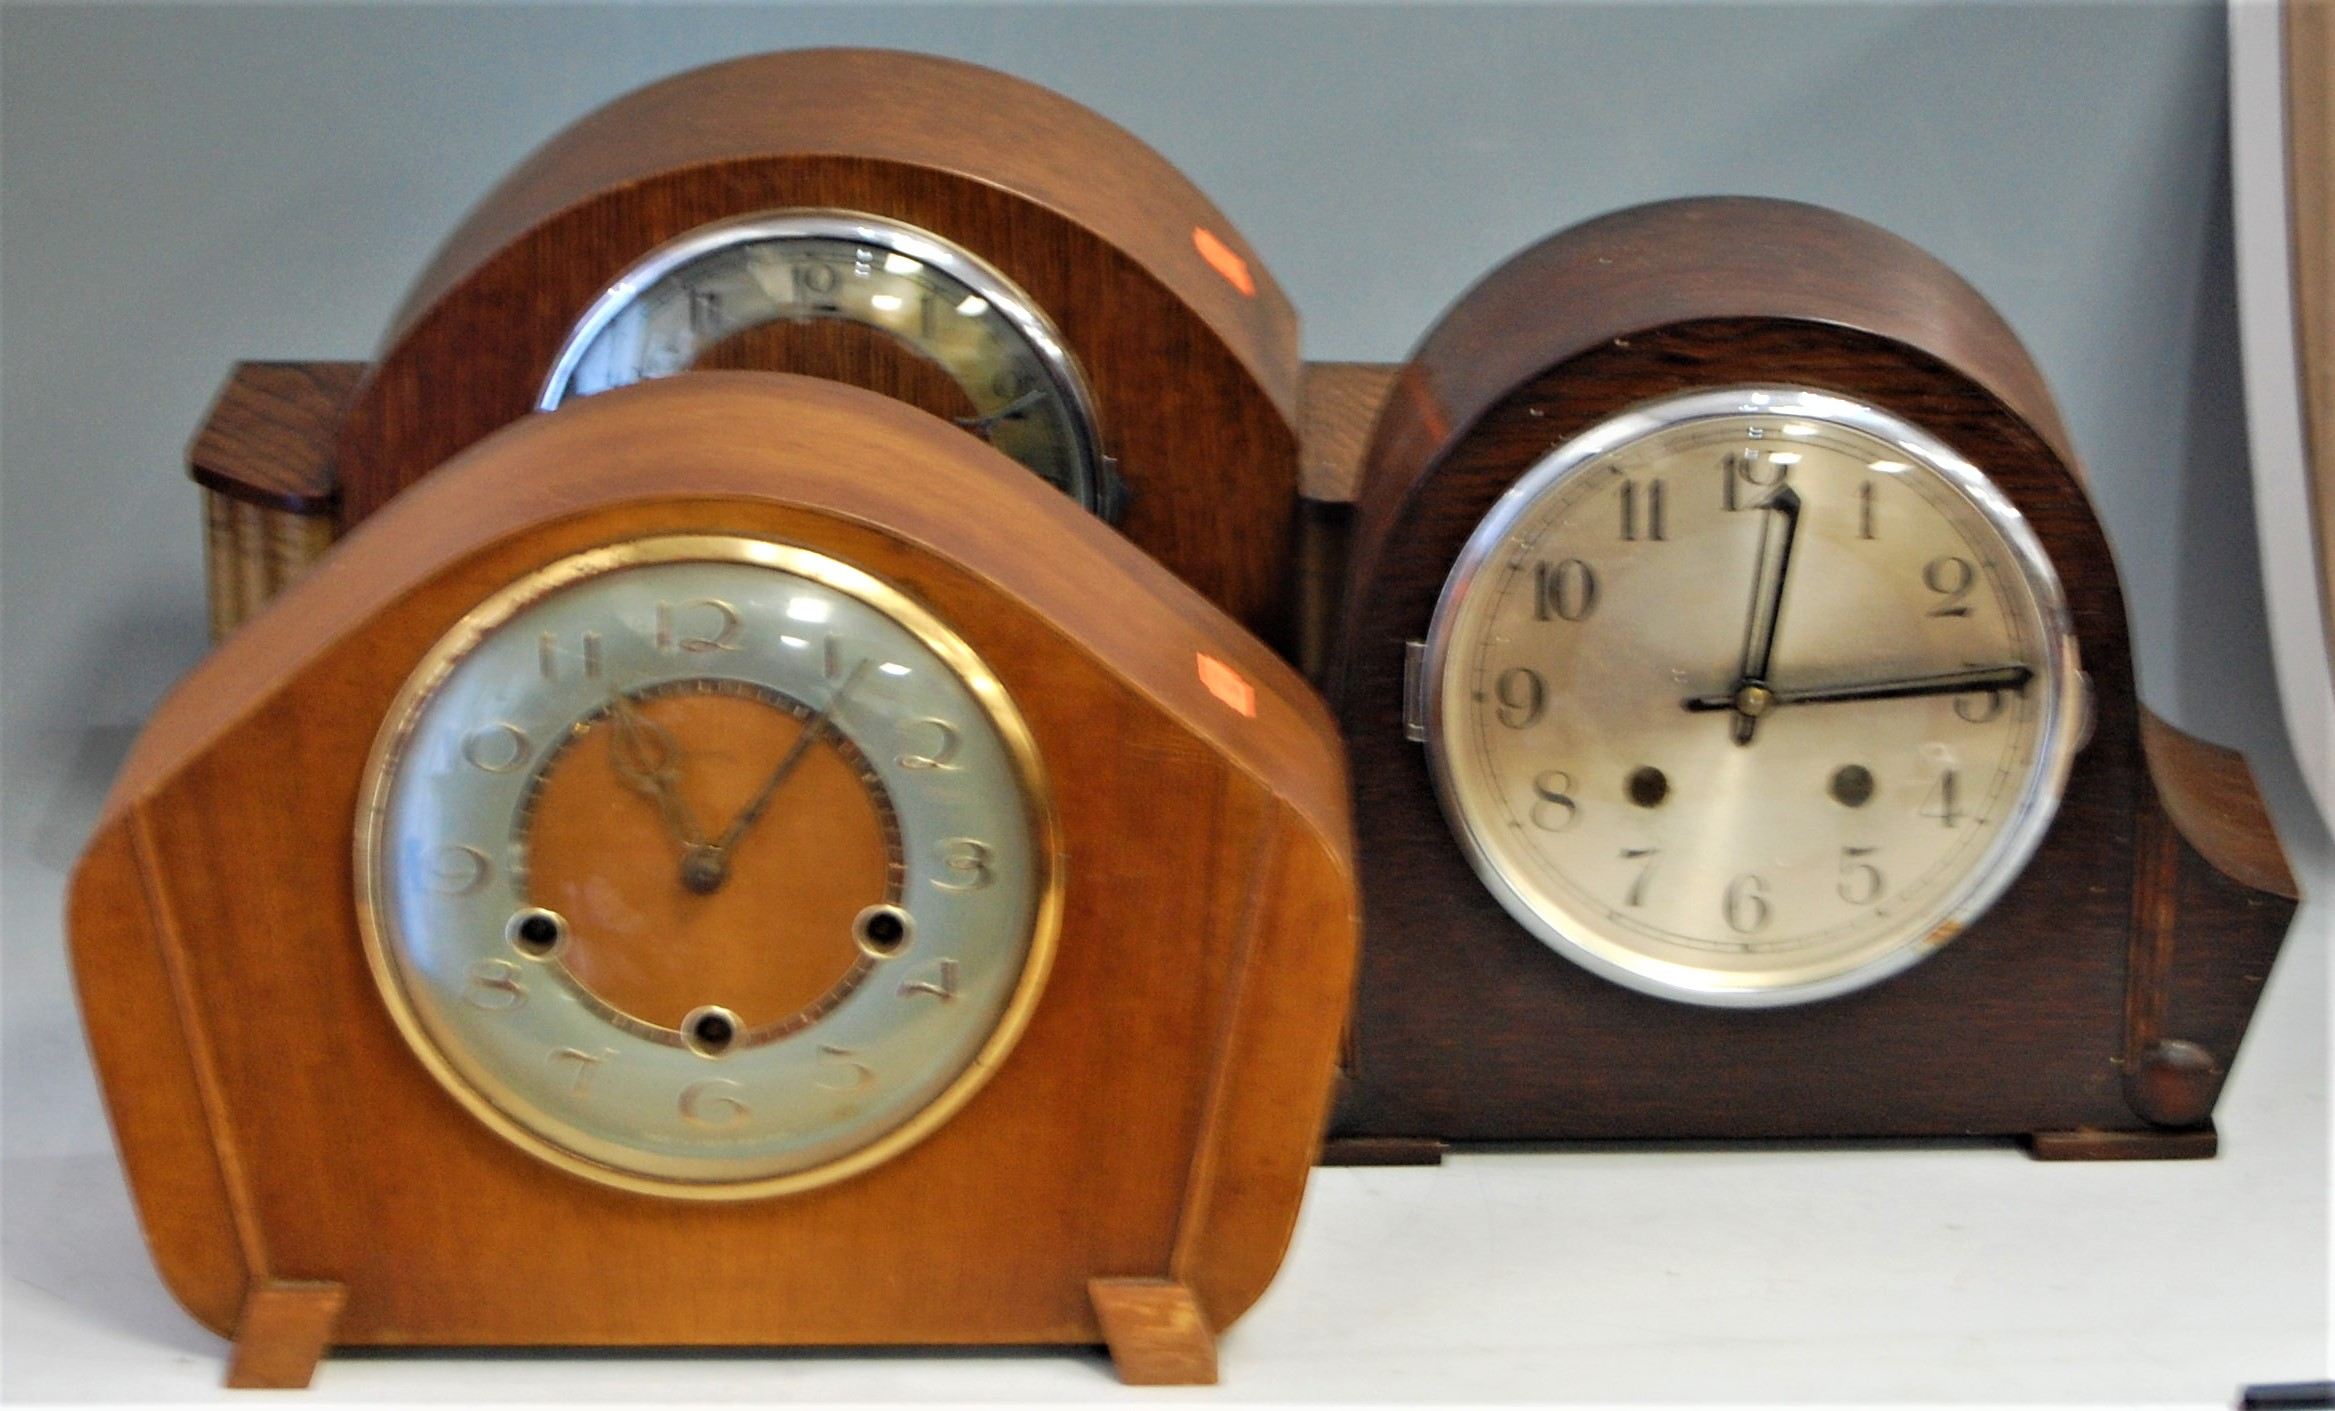 Lot 21 - An Art Deco oak cased mantel clock, having silvered chapter ring with Arabic numerals and chiming